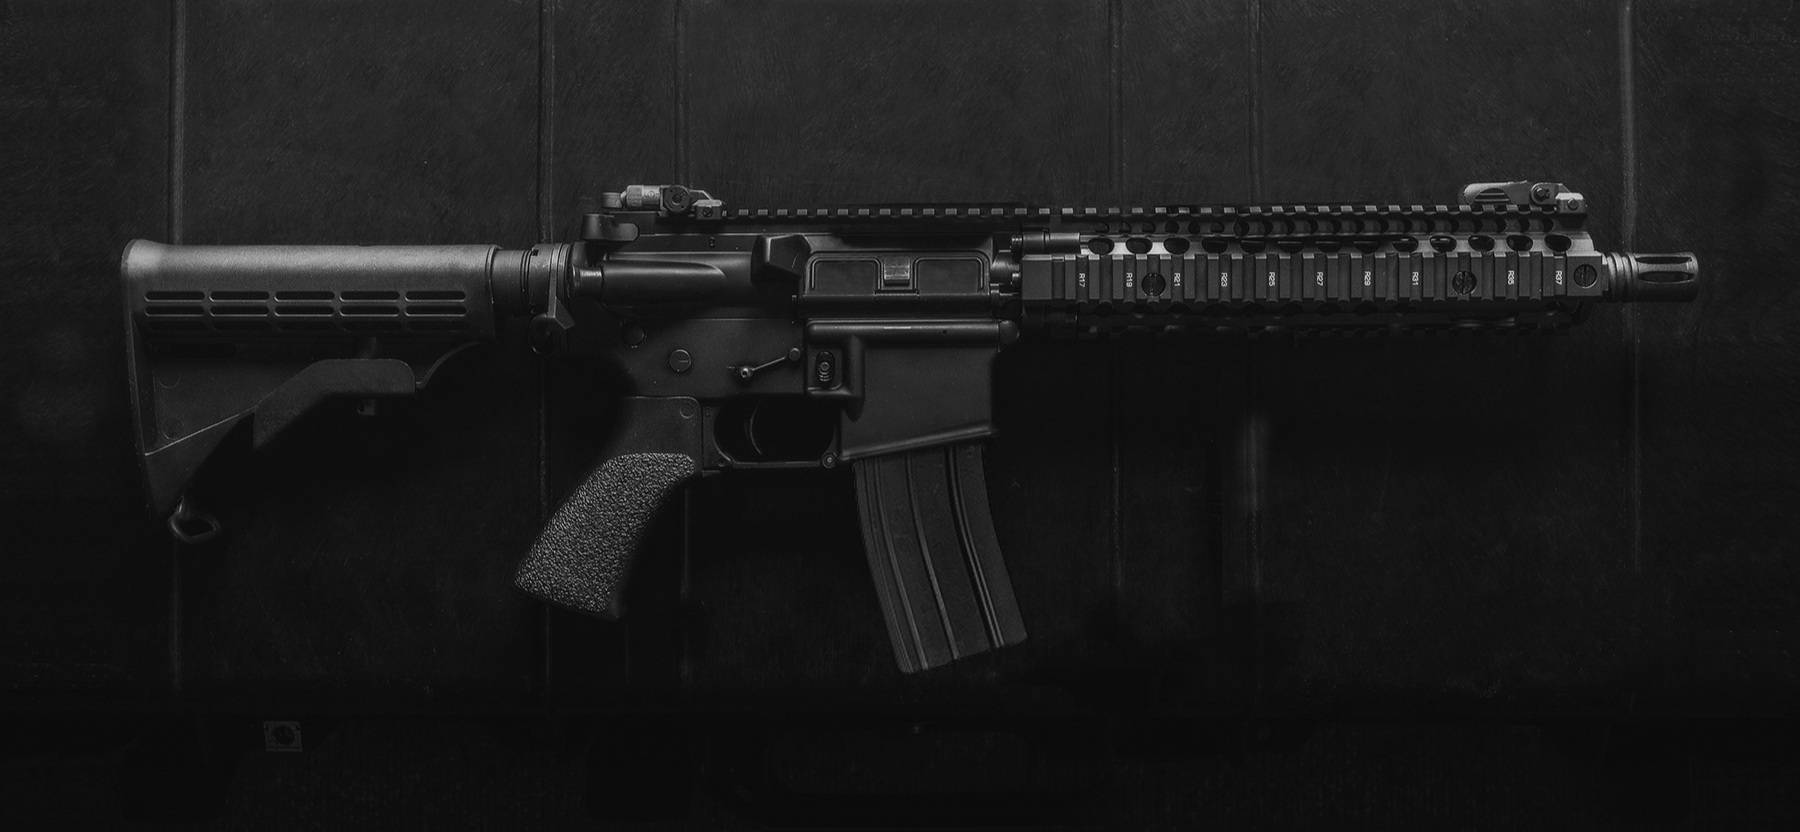 *10-inch SBR variant shown with iron sights